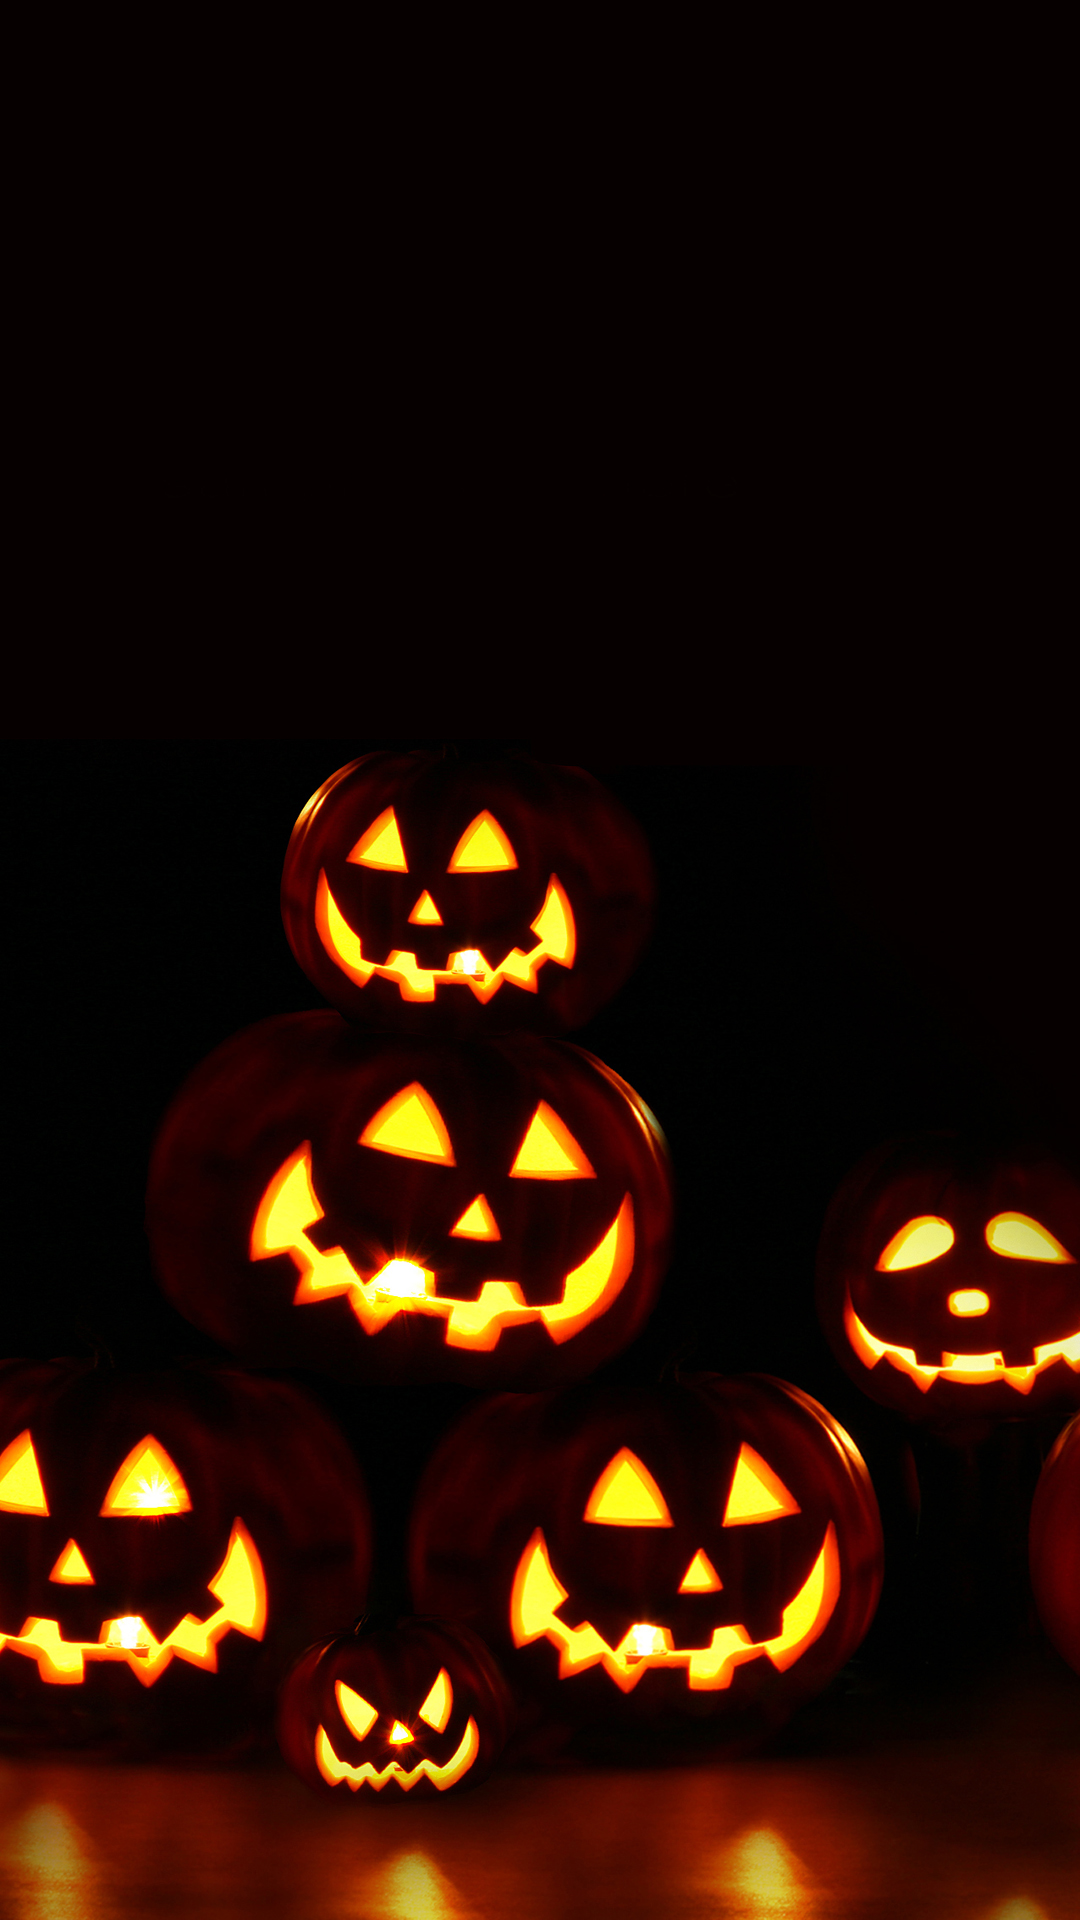 Peanuts Fall Iphone Wallpaper Pumpkins Halloween Best Htc One Wallpapers Free And